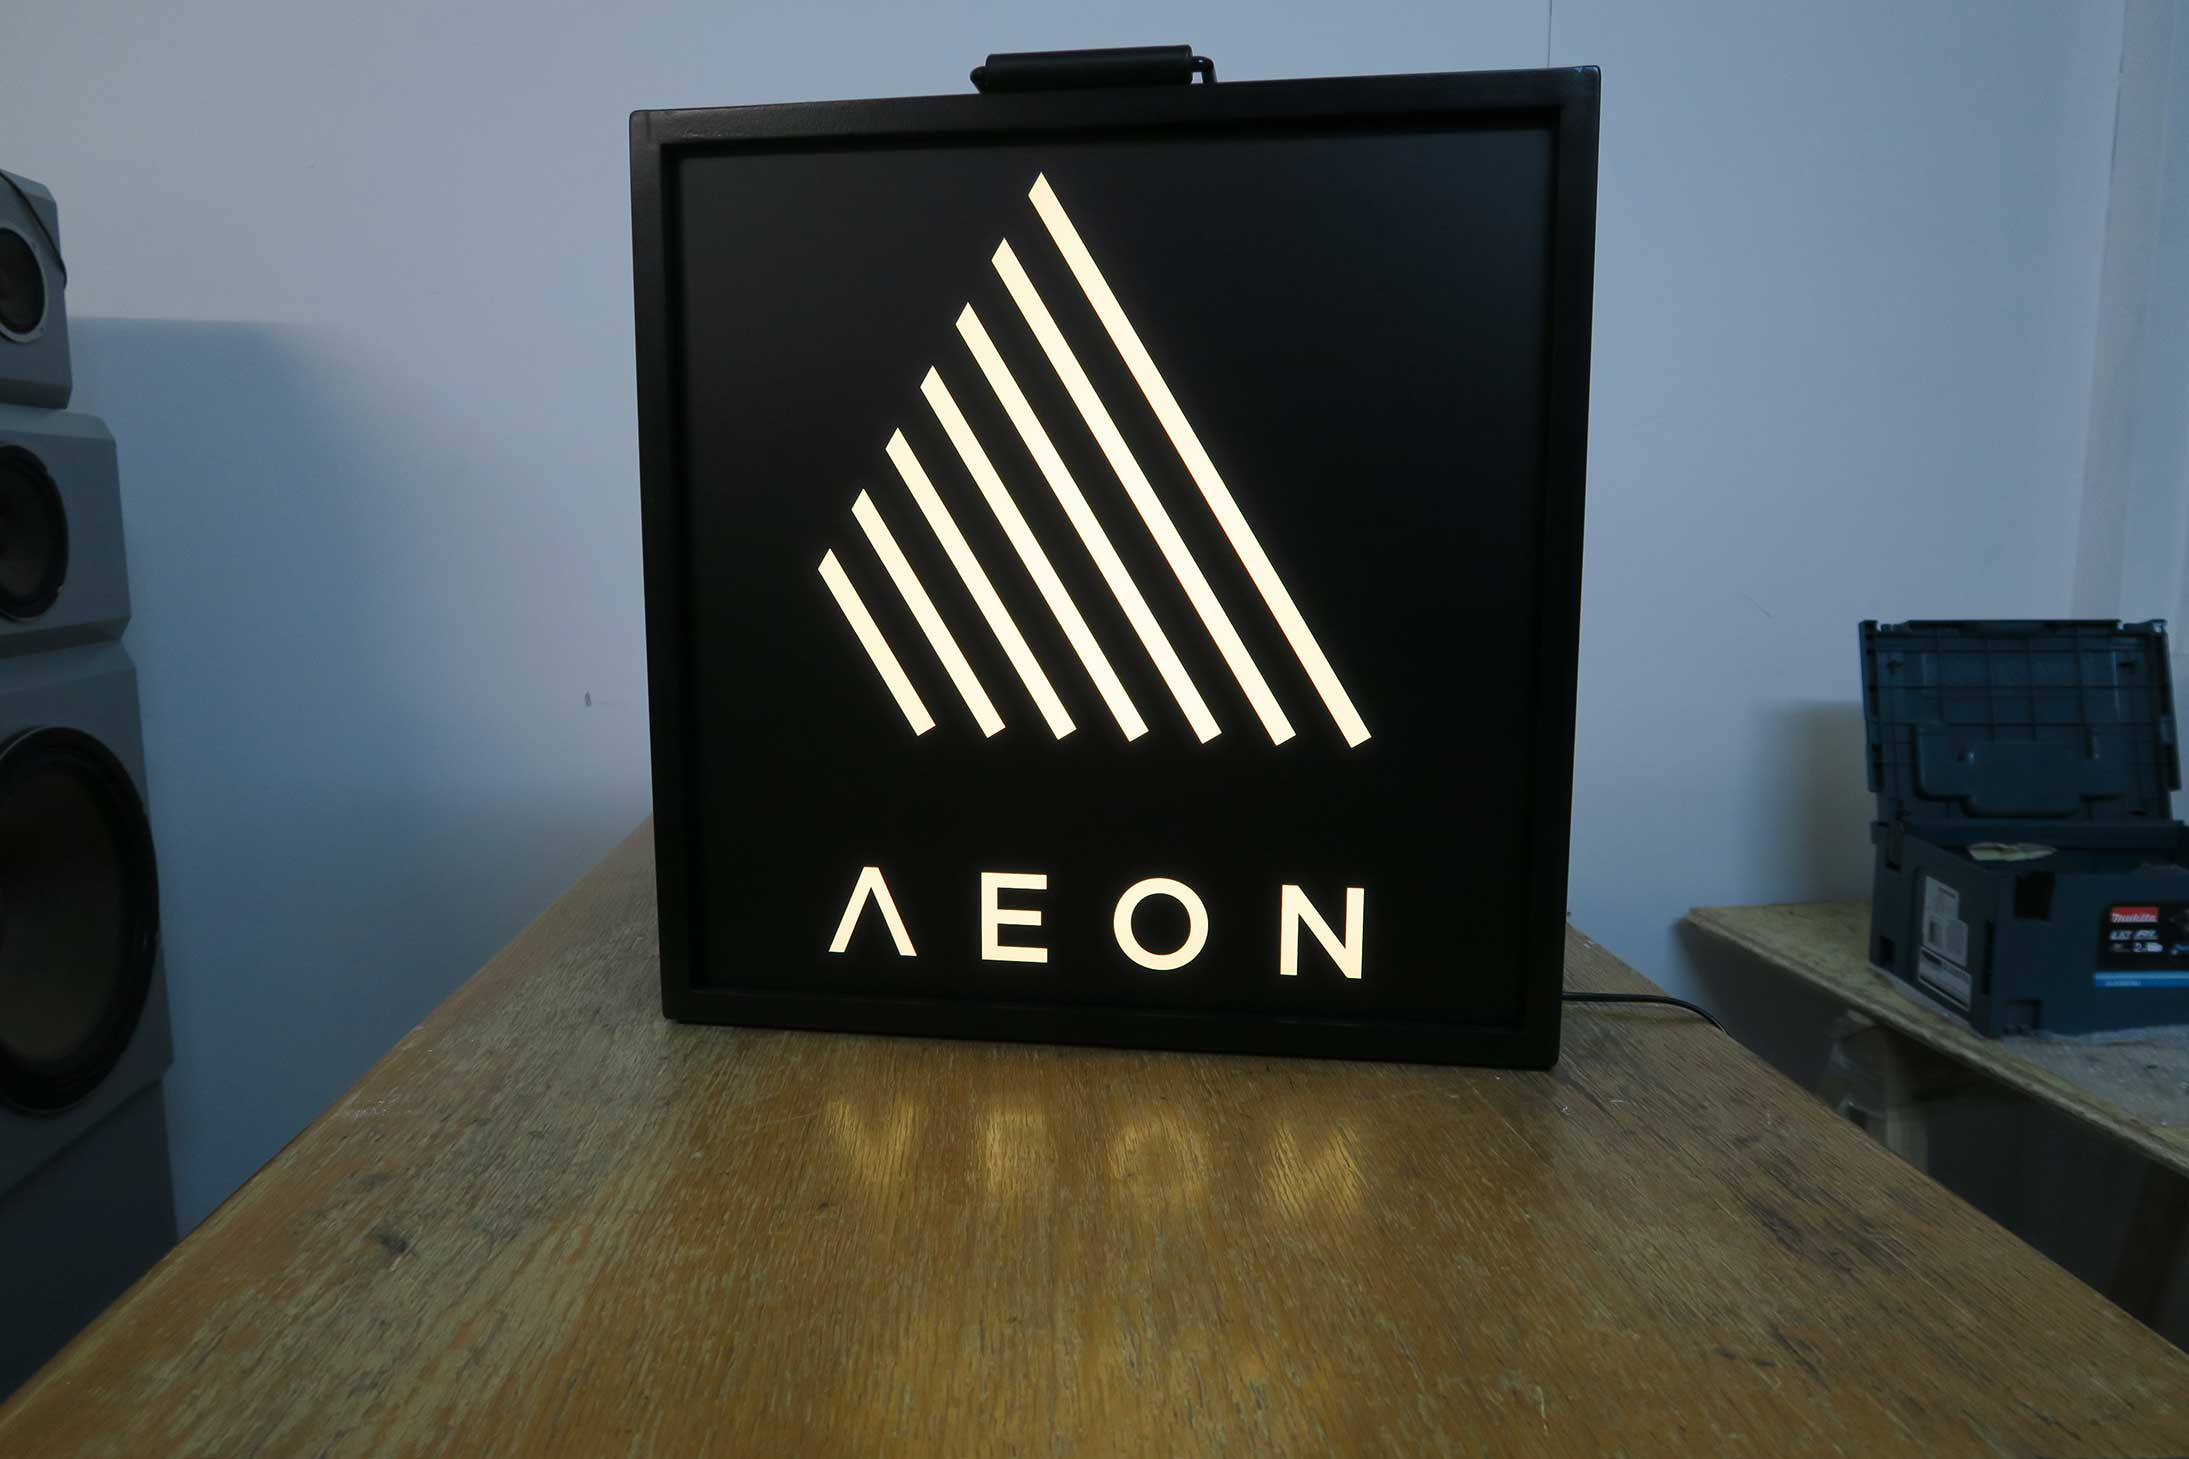 Aeon light box sign